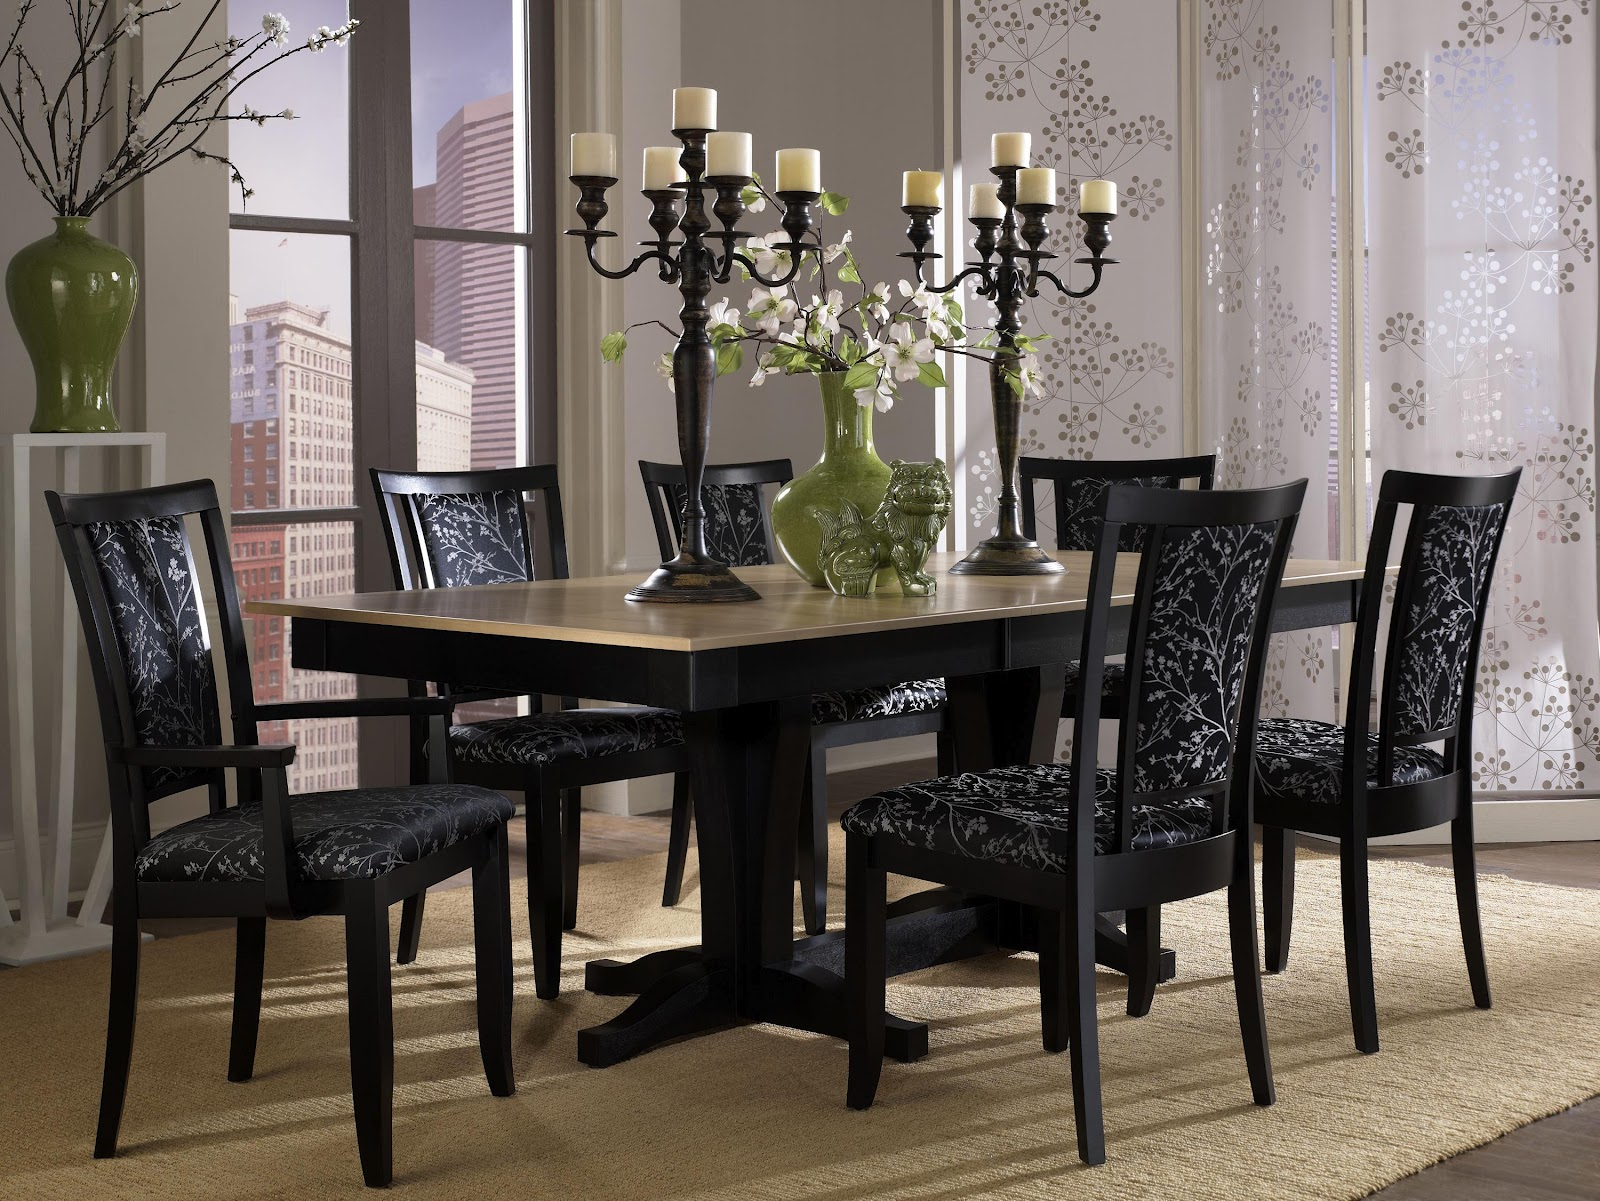 Canadel dining room sets new york dining room unique dinette canadel ny bermex ny 631 742 1351 - Black dining room tables ...